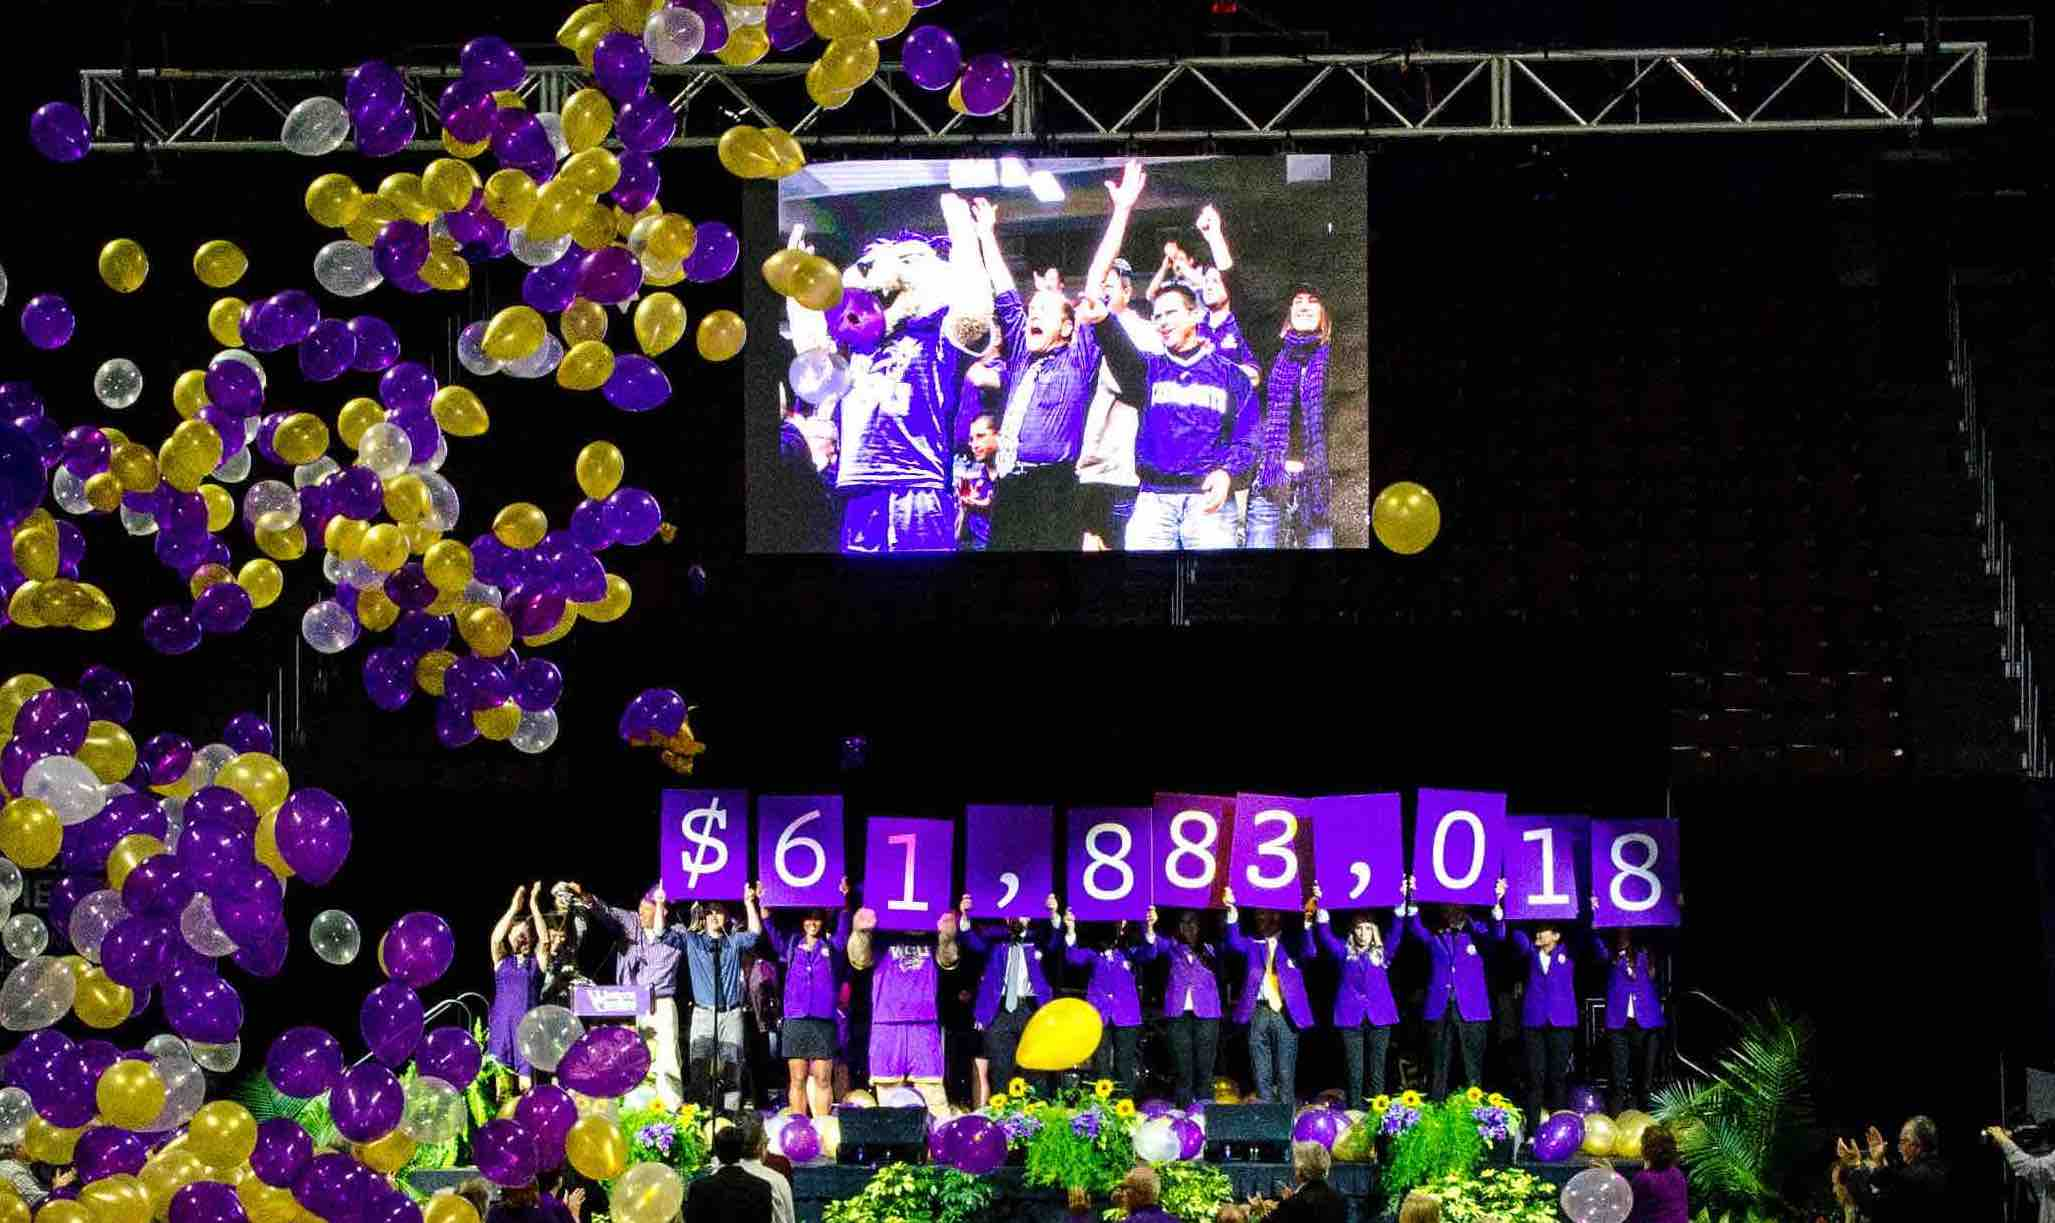 'Lead the Way' fundraising campaign total surpasses $60 million goal